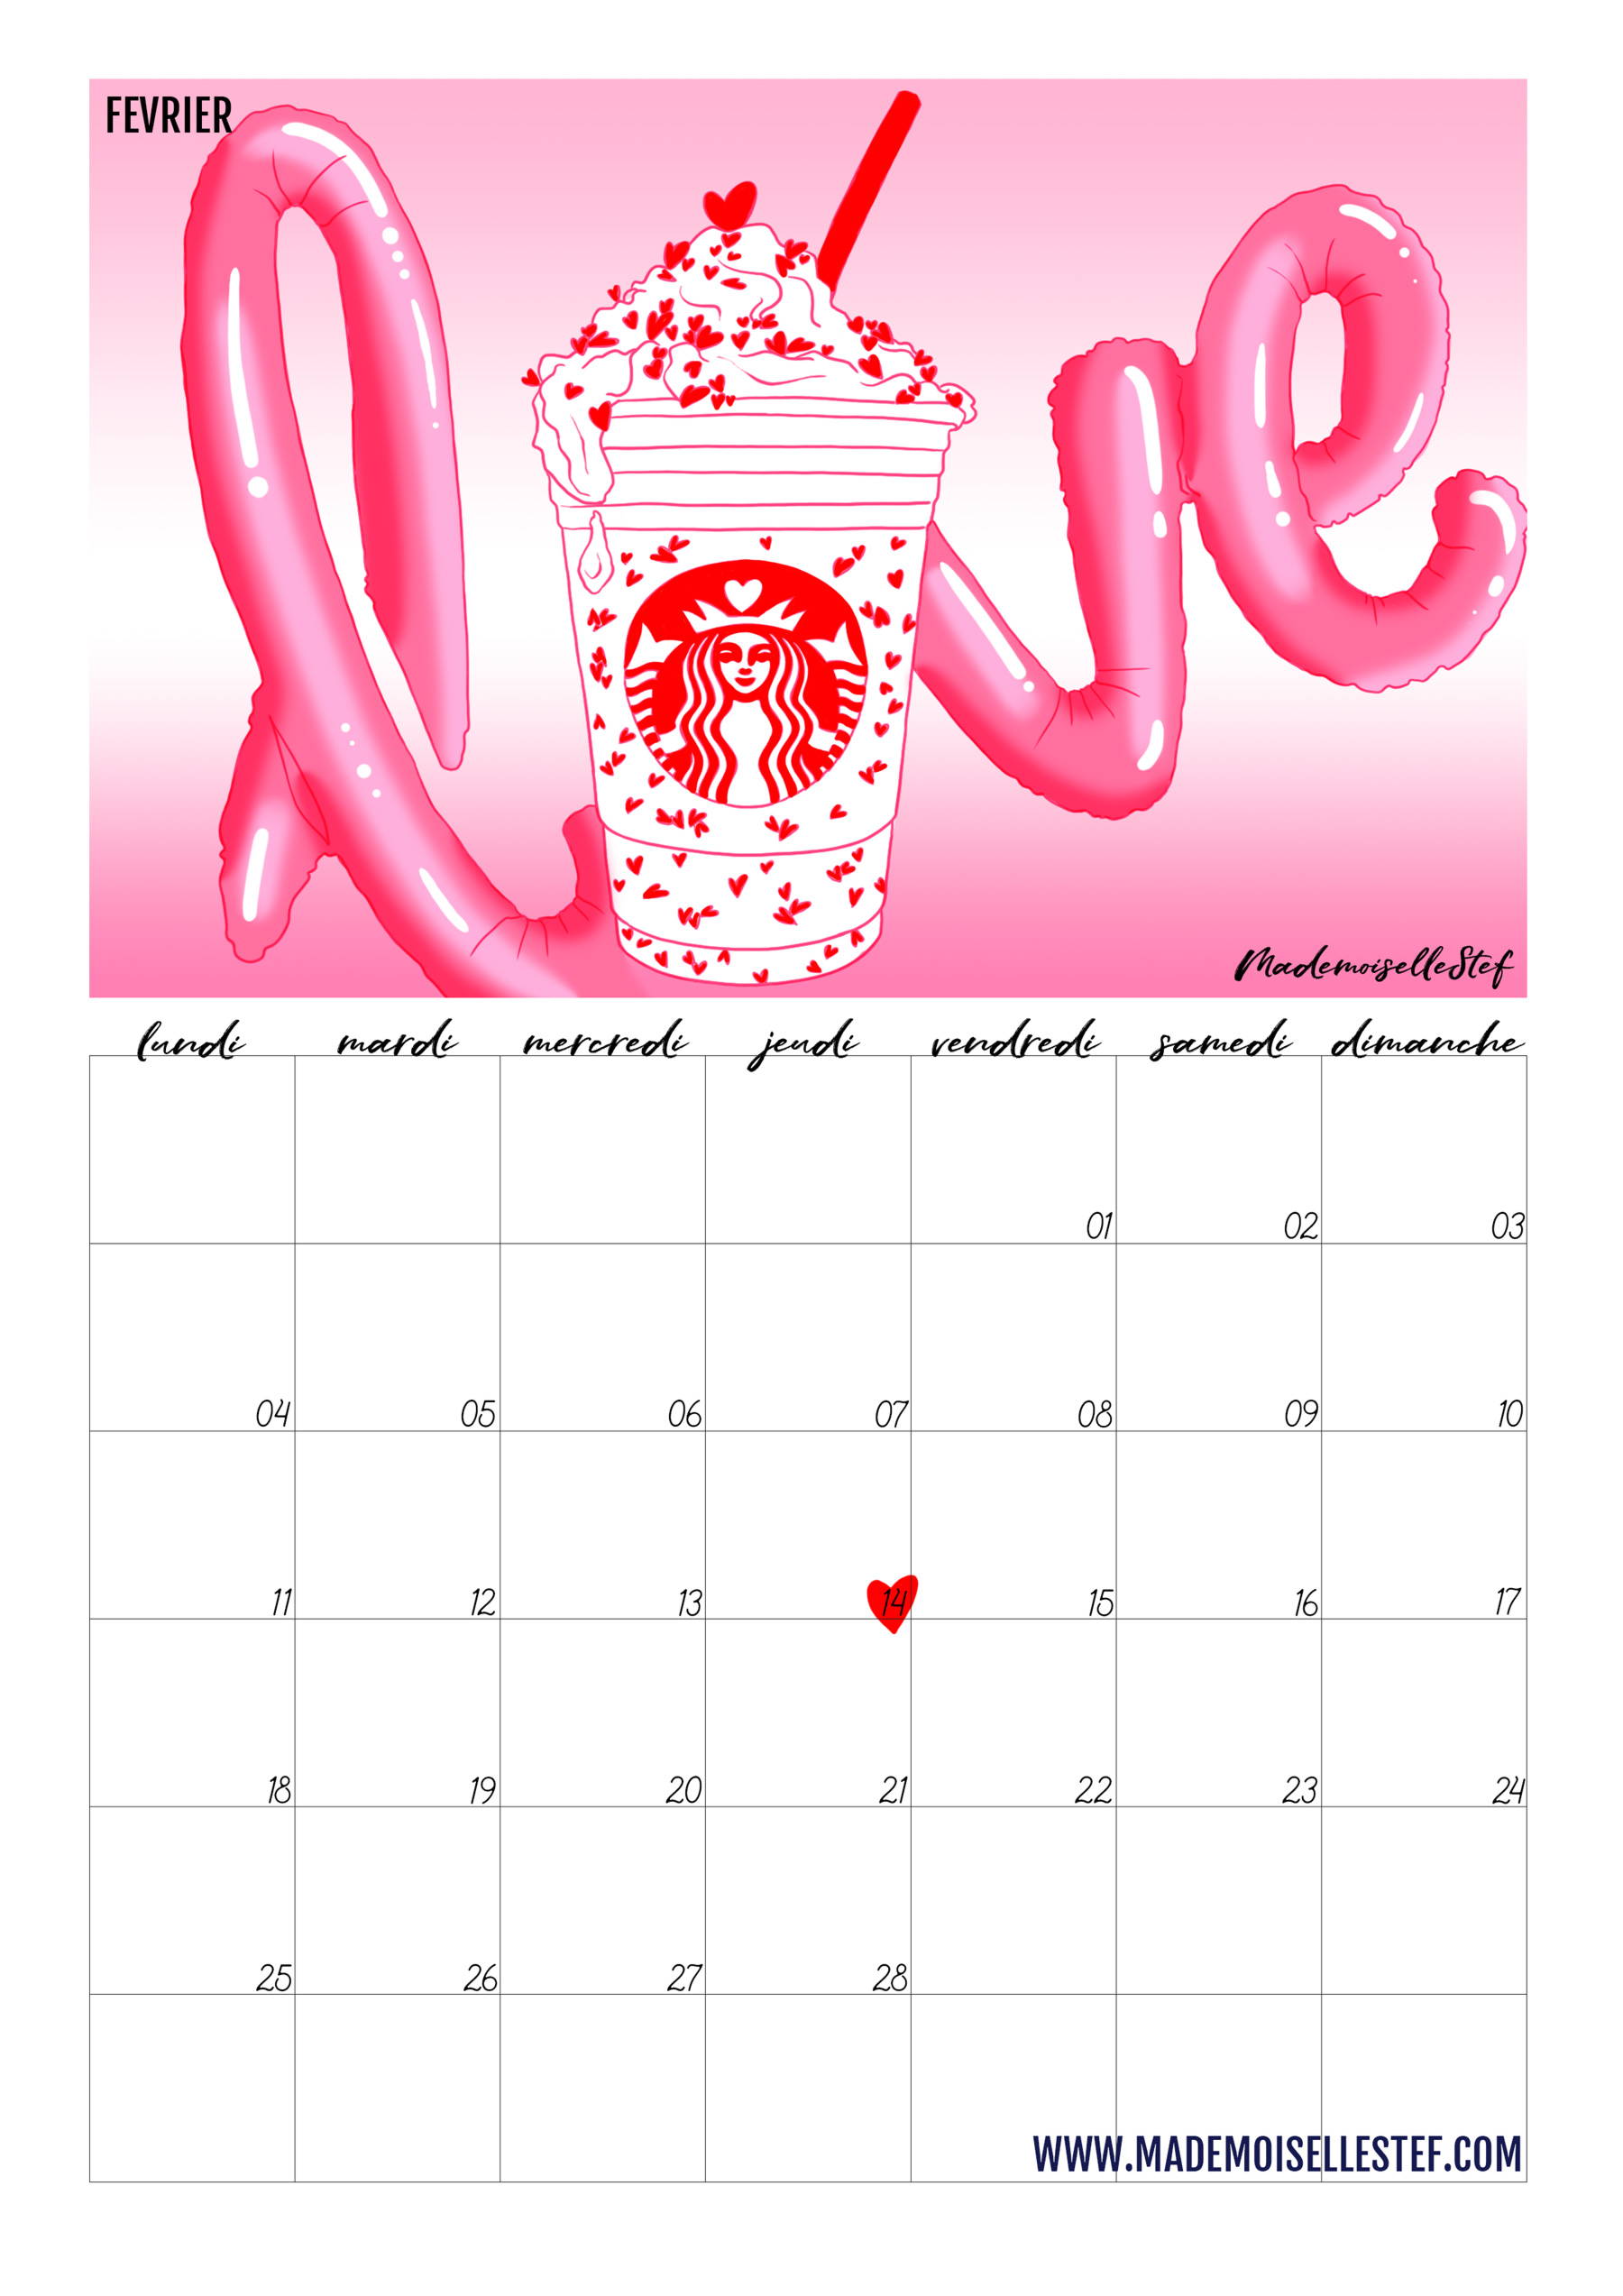 Fevrier Calendrier.Calendrier Fevrier 2019 Valentine S Day I Mademoiselle Stef